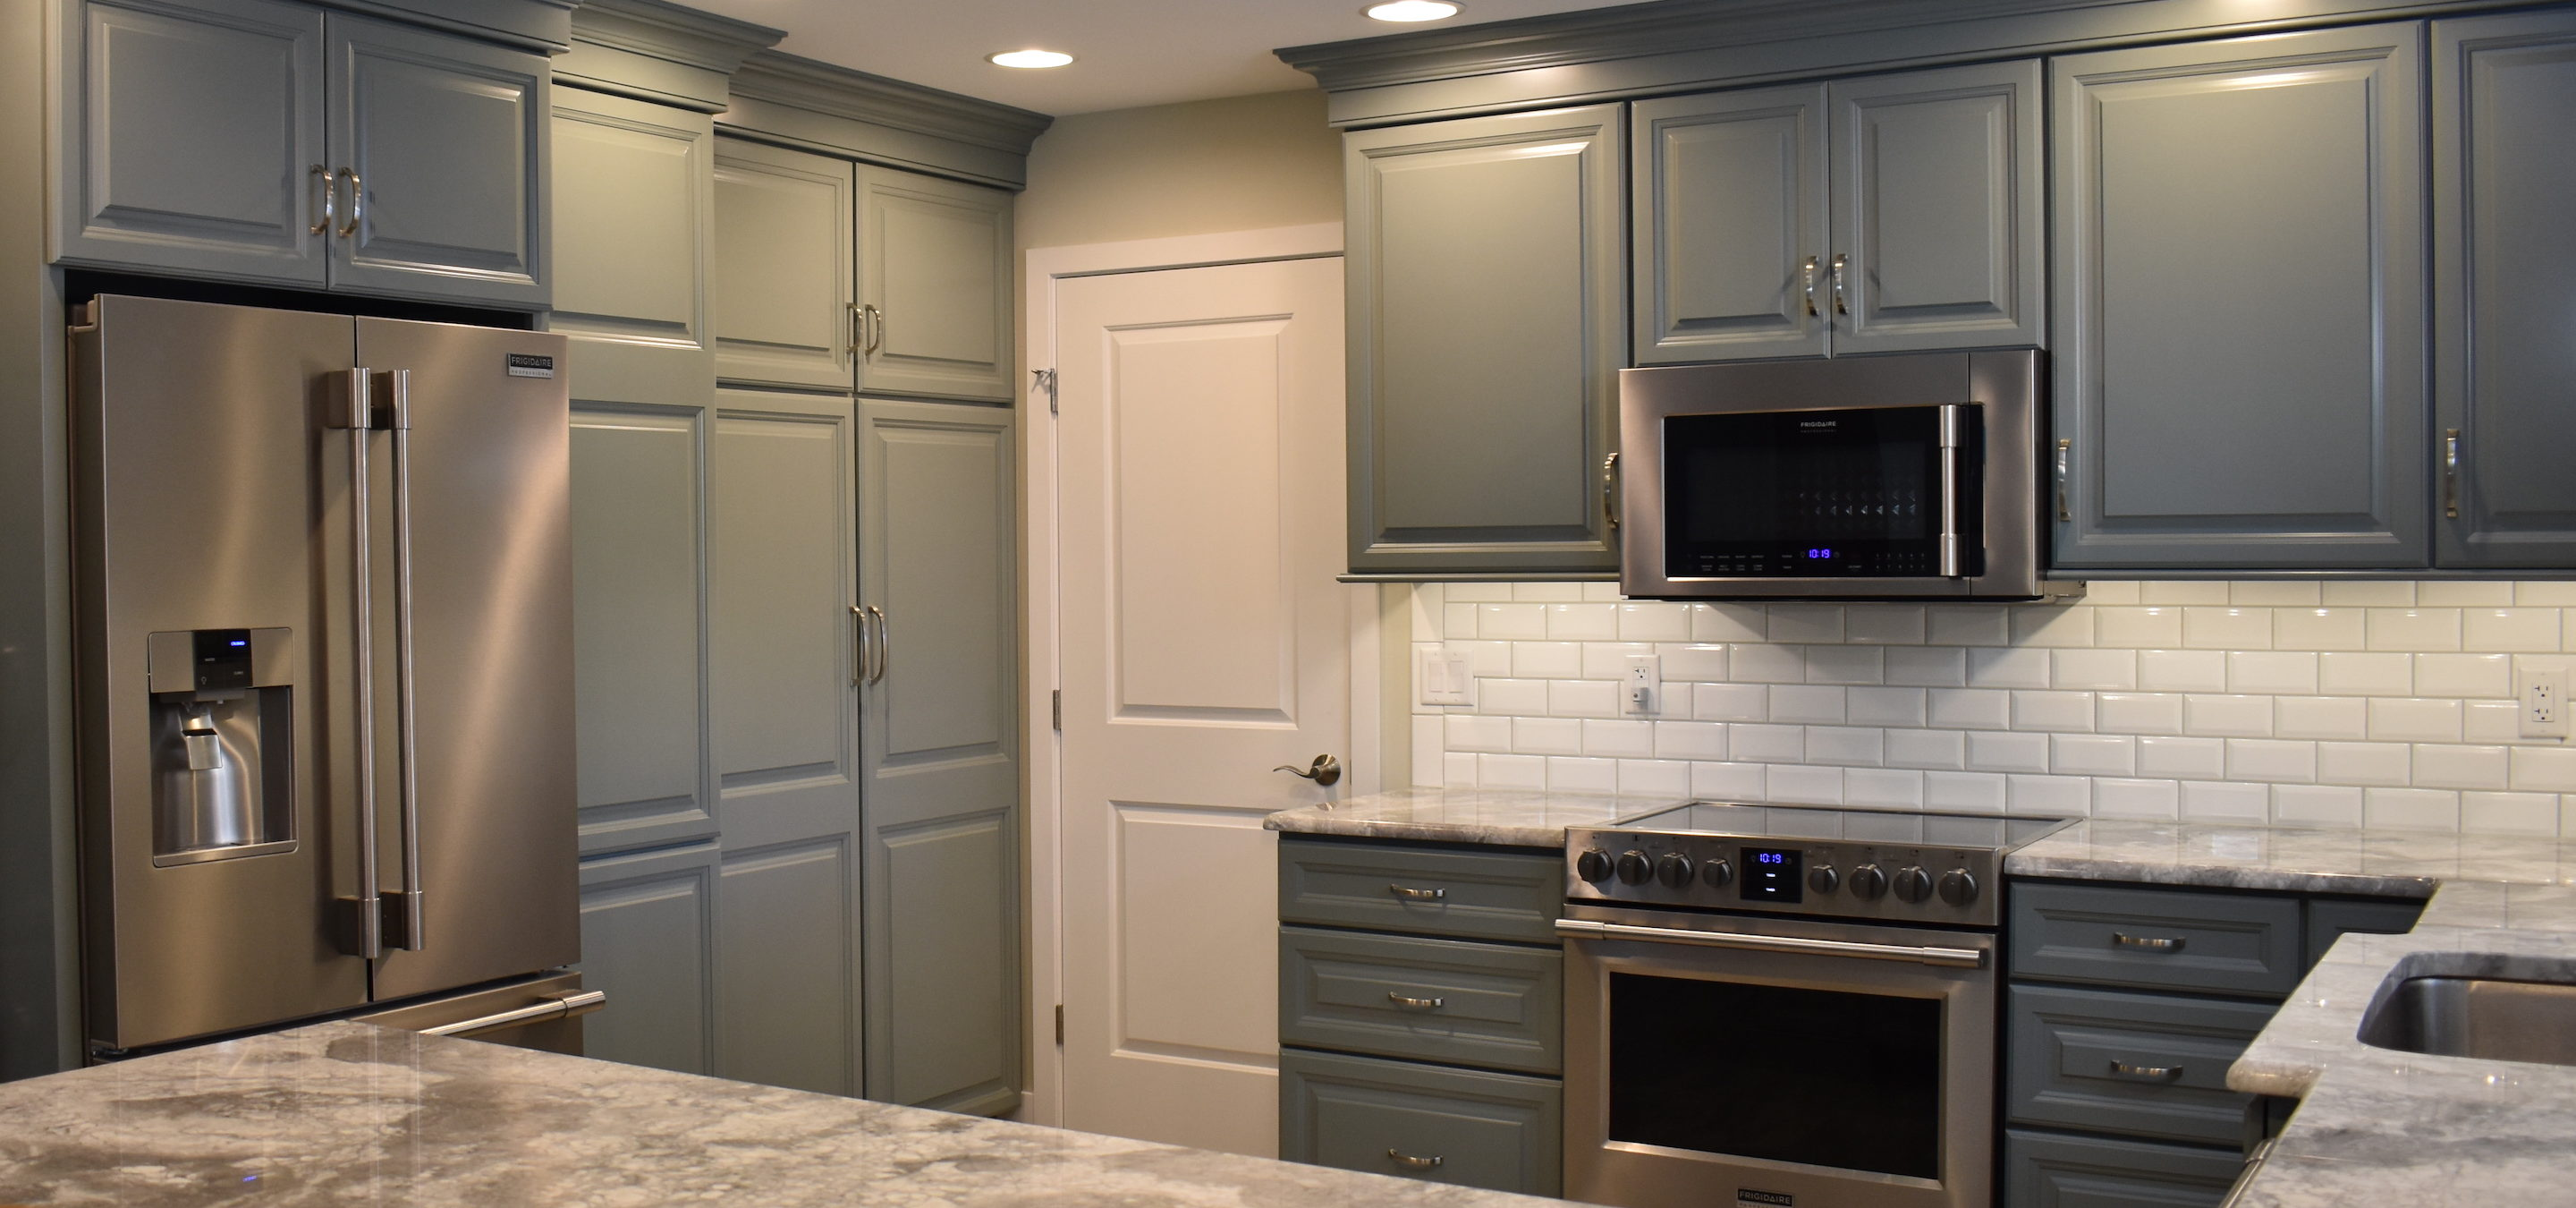 Kitchens Ideas Pictures Rm Kitchens Inc Custom Cabinet Makers And Installers In